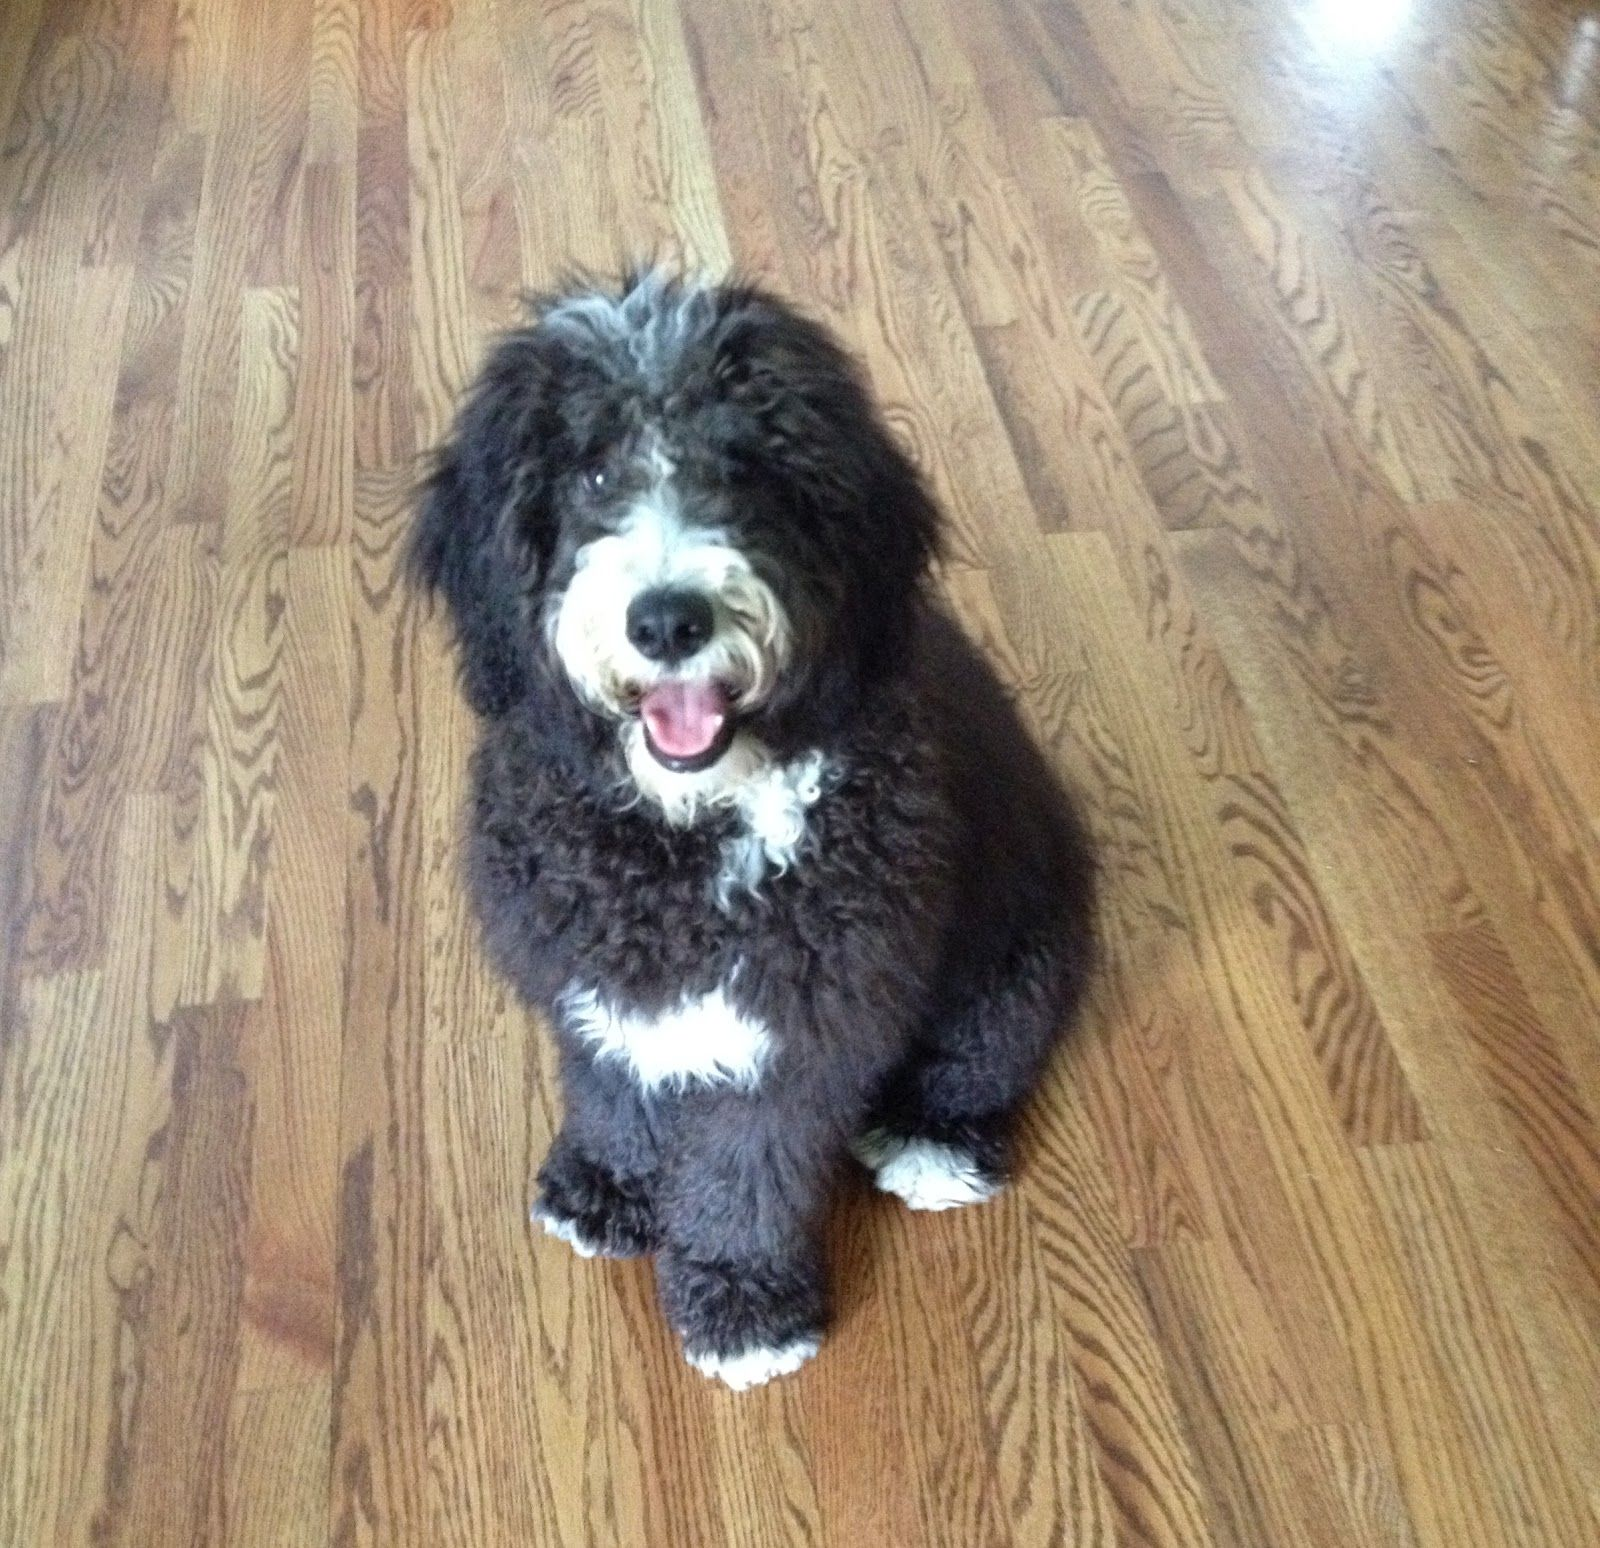 Bernedoodle Bernese Mountain Dog And Poodle Mix My Favorite Doodle Mix And The Only One I Would Want To Own